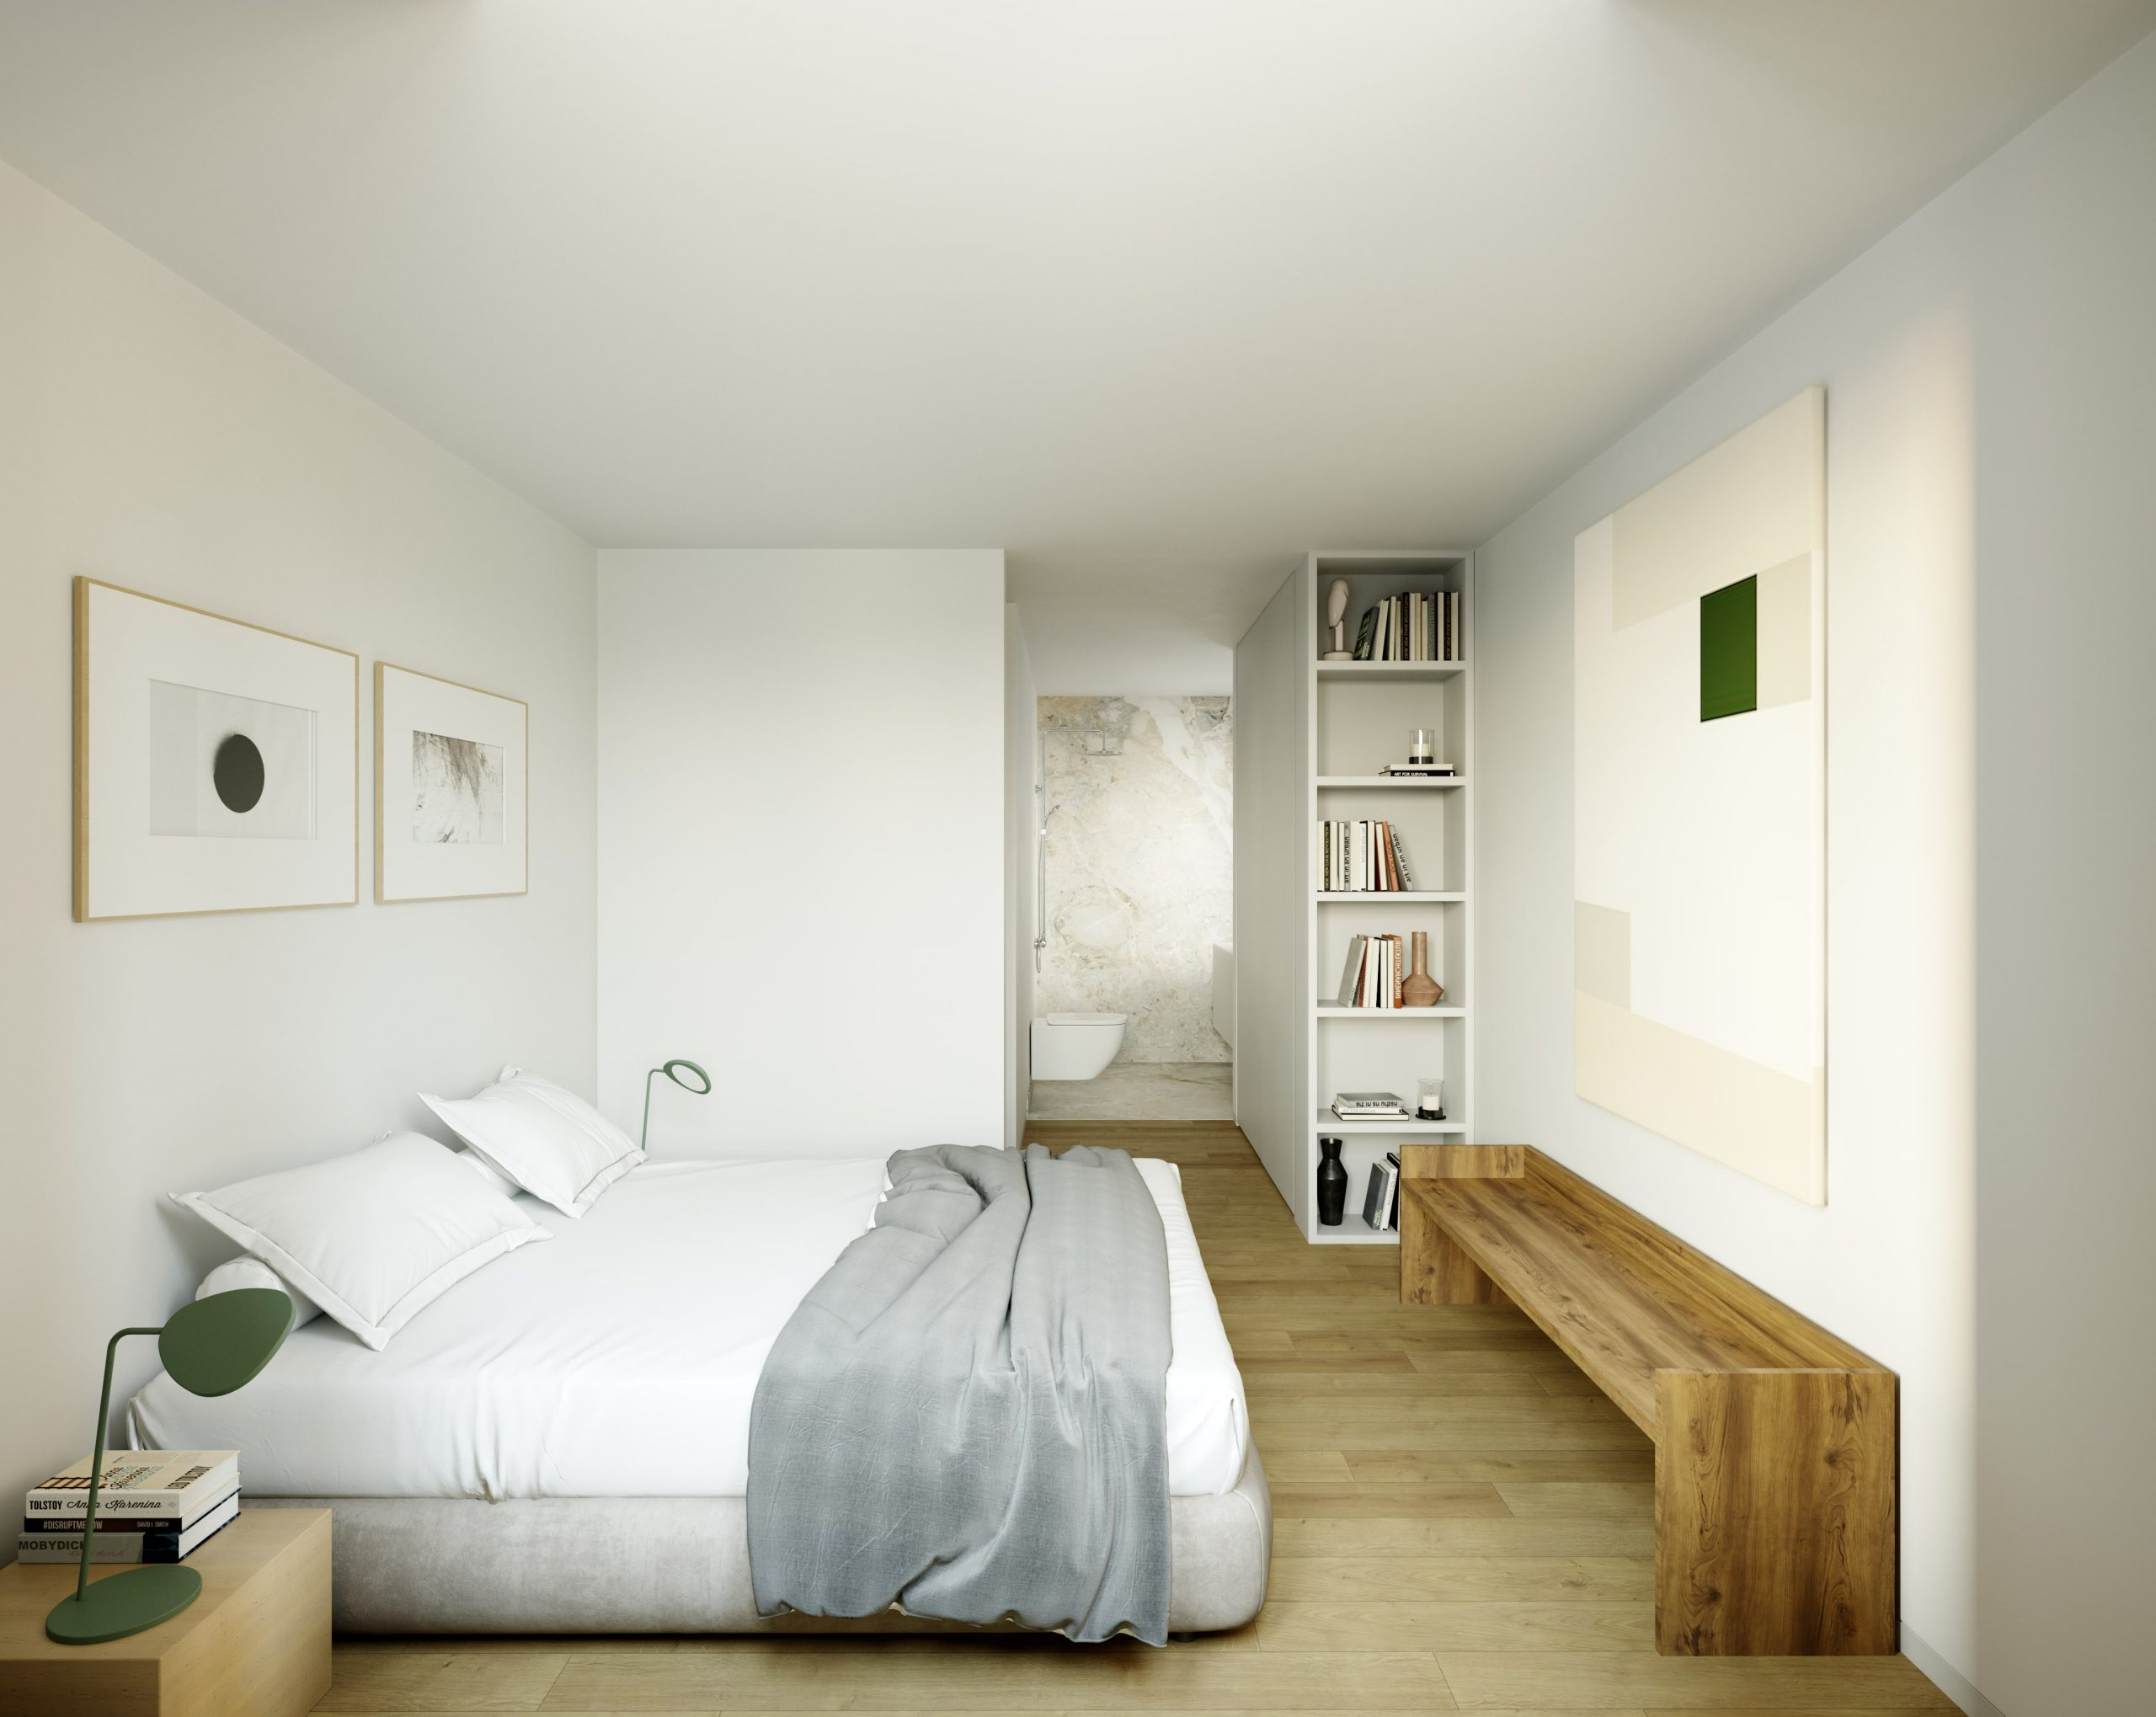 //vpva.pt/wp-content/uploads/2020/01/vpva.pt-3d-render-archviz-architecture-project-phdd-pedroucos-belem-lisboa-quarto-bedroom-scaled.jpg